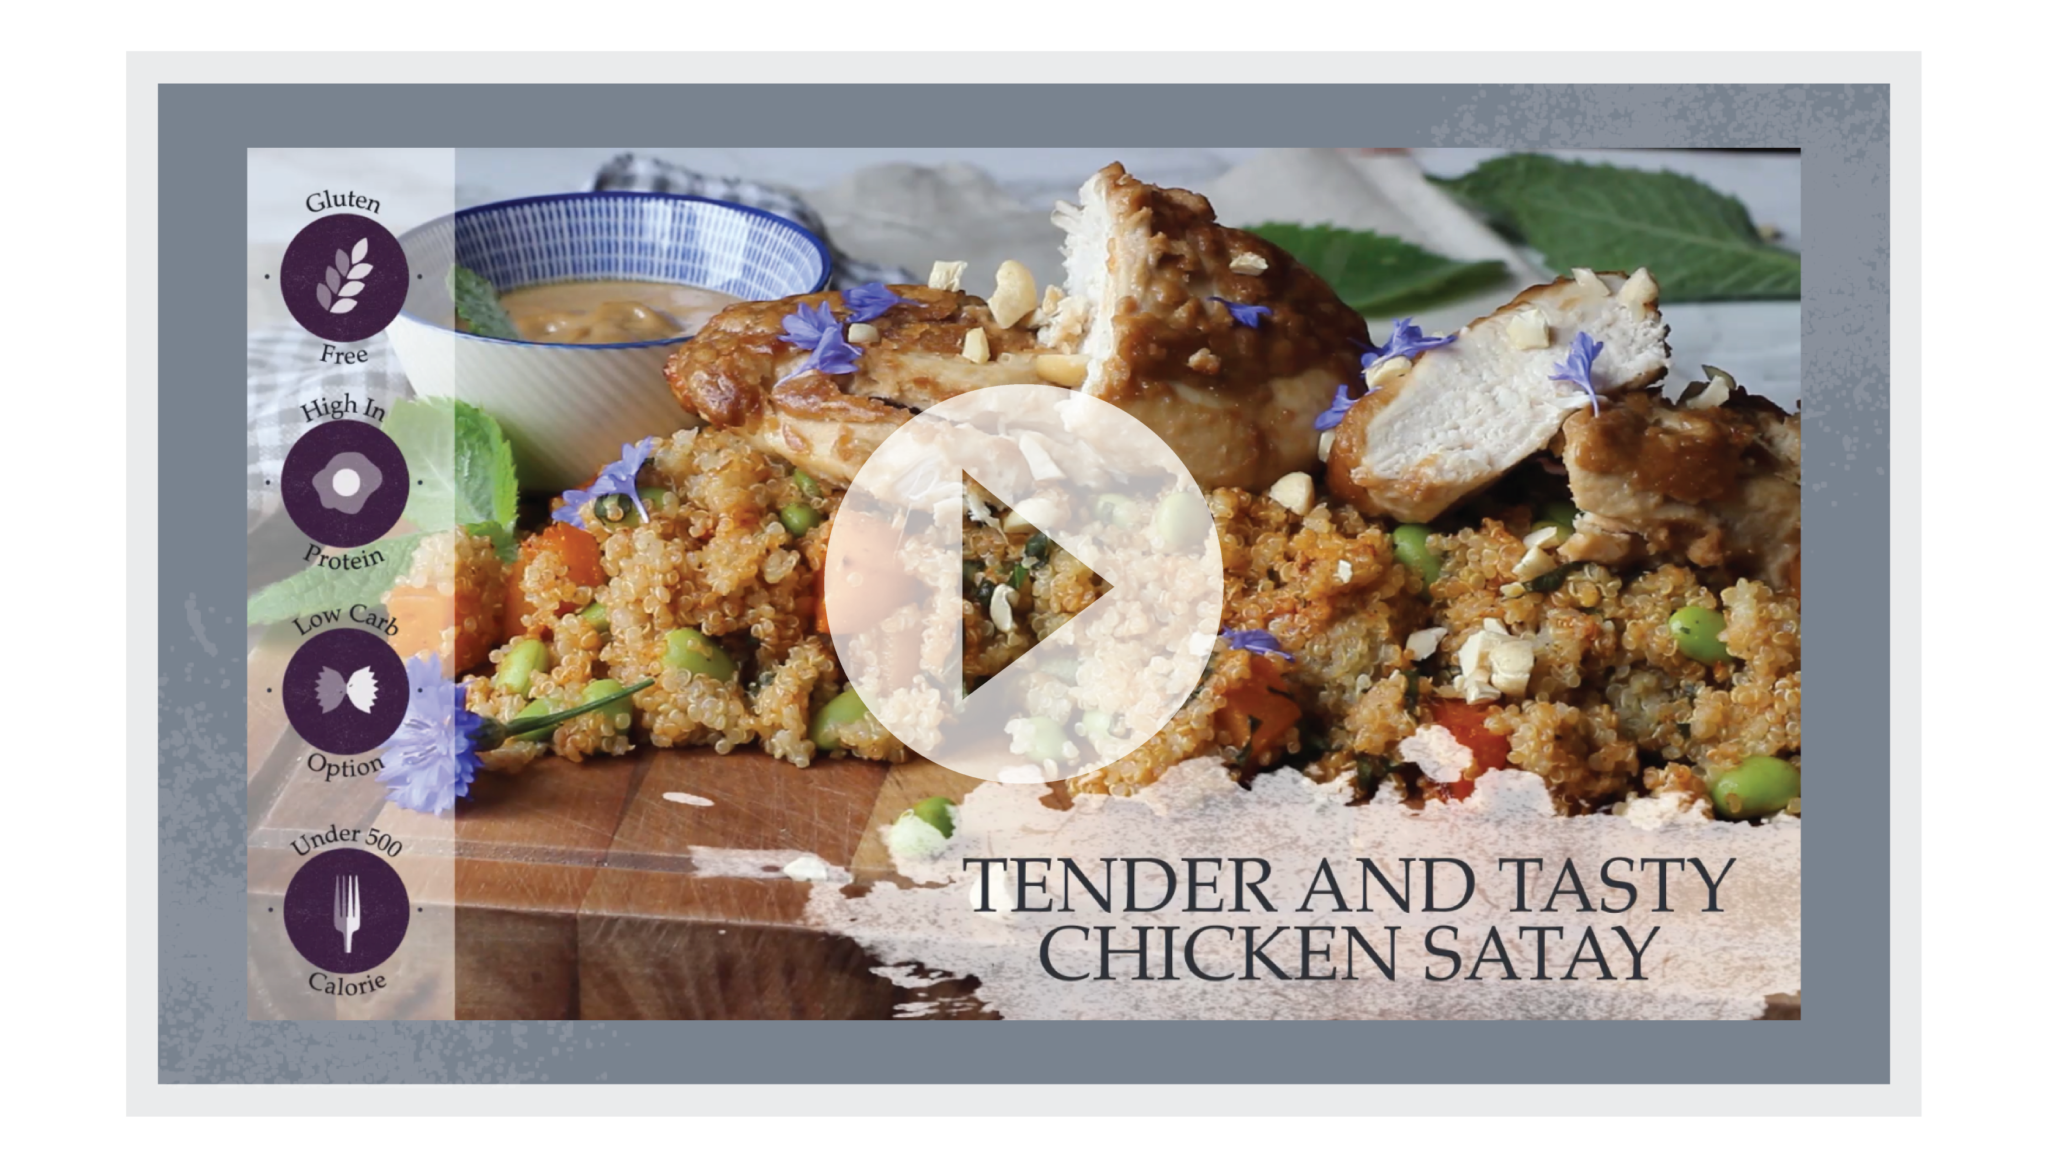 New recipe from proper foodie chicken satay and quinoa salad new recipe from proper foodie chicken satay and quinoa salad forumfinder Choice Image